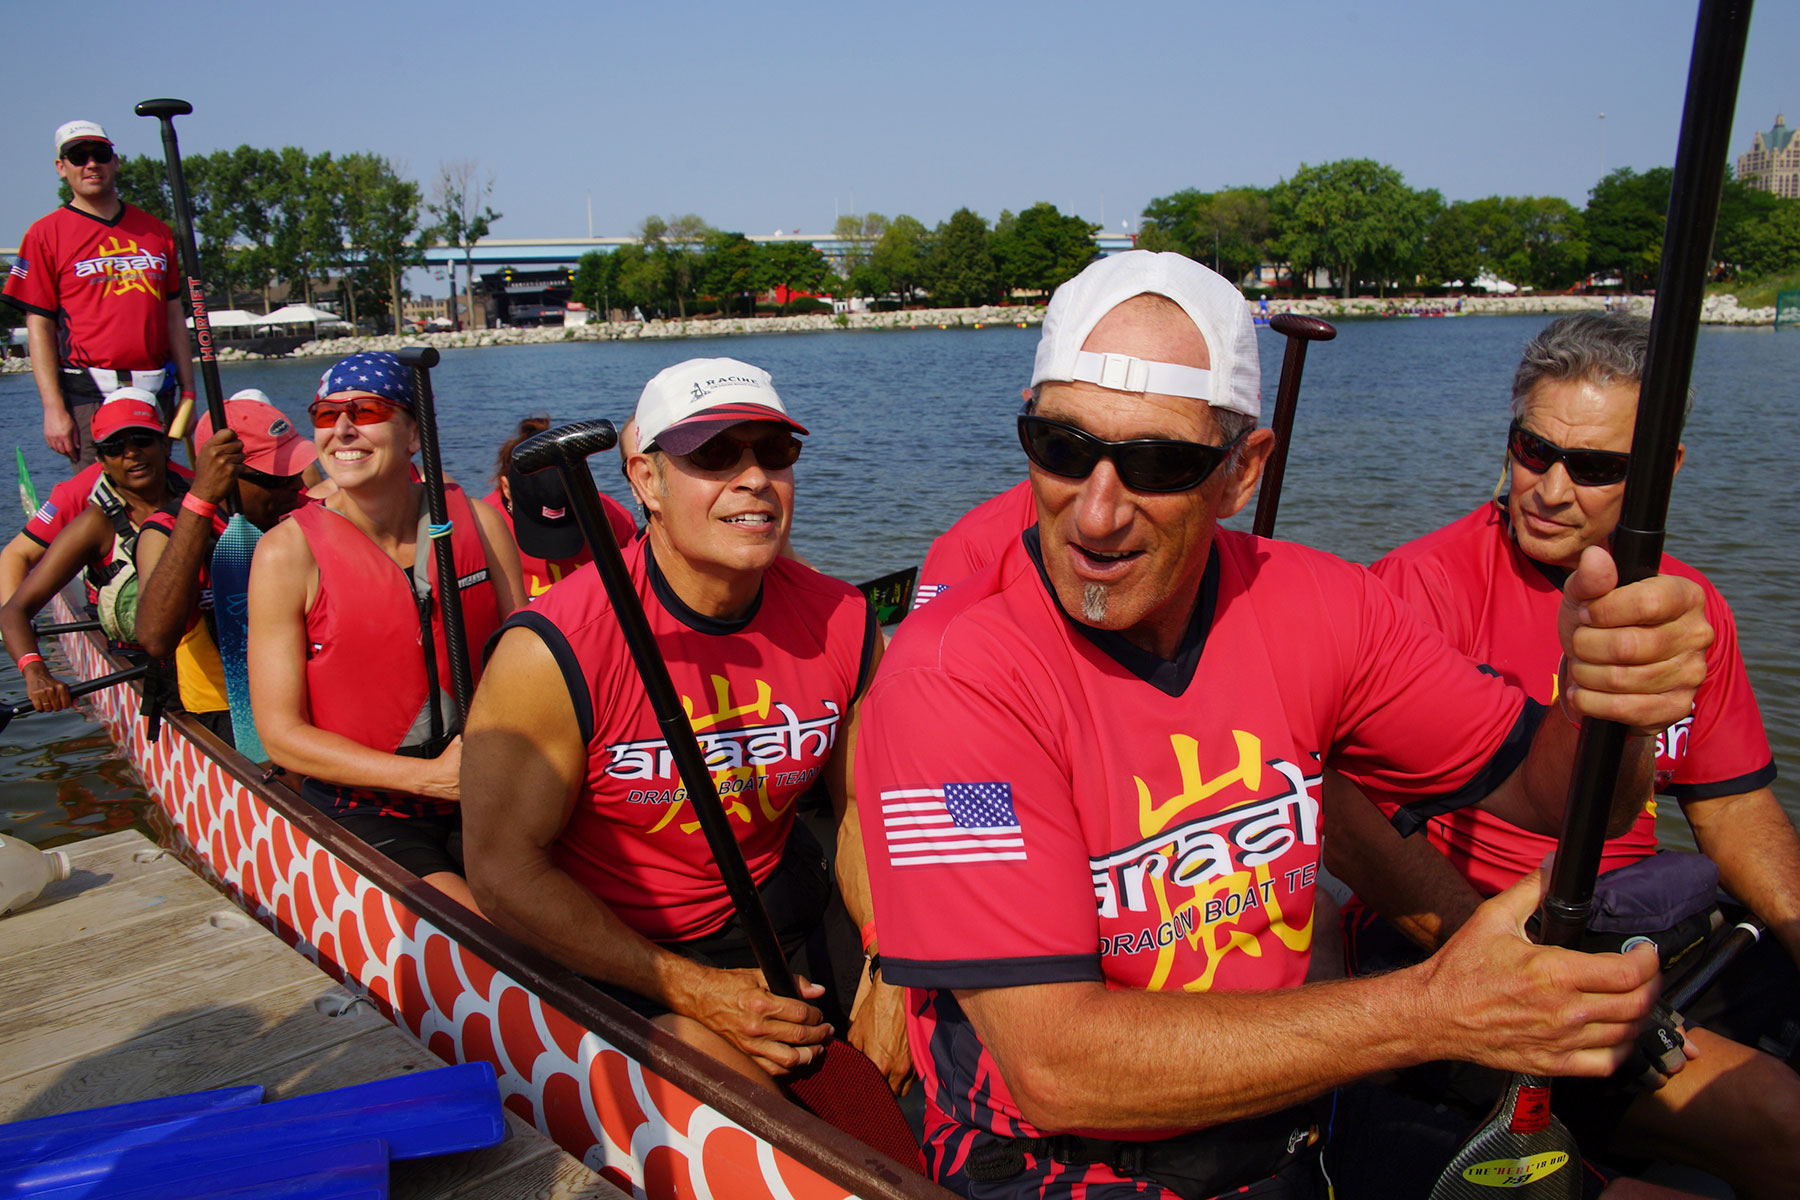 081118_dragonboat_290